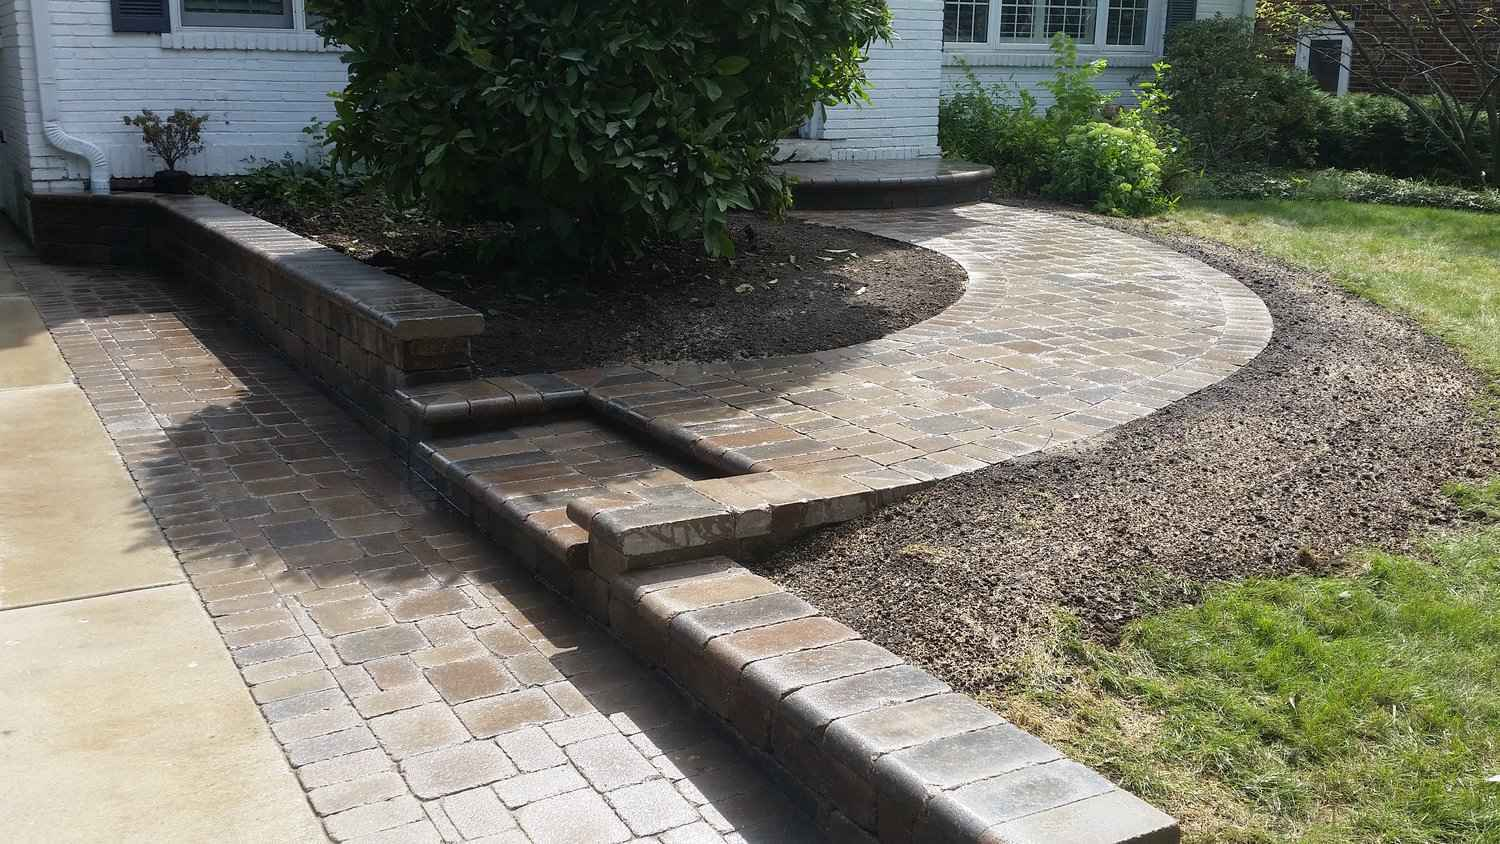 Heath-Garland TX Landscape Designs & Outdoor Living Areas-We offer Landscape Design, Outdoor Patios & Pergolas, Outdoor Living Spaces, Stonescapes, Residential & Commercial Landscaping, Irrigation Installation & Repairs, Drainage Systems, Landscape Lighting, Outdoor Living Spaces, Tree Service, Lawn Service, and more.